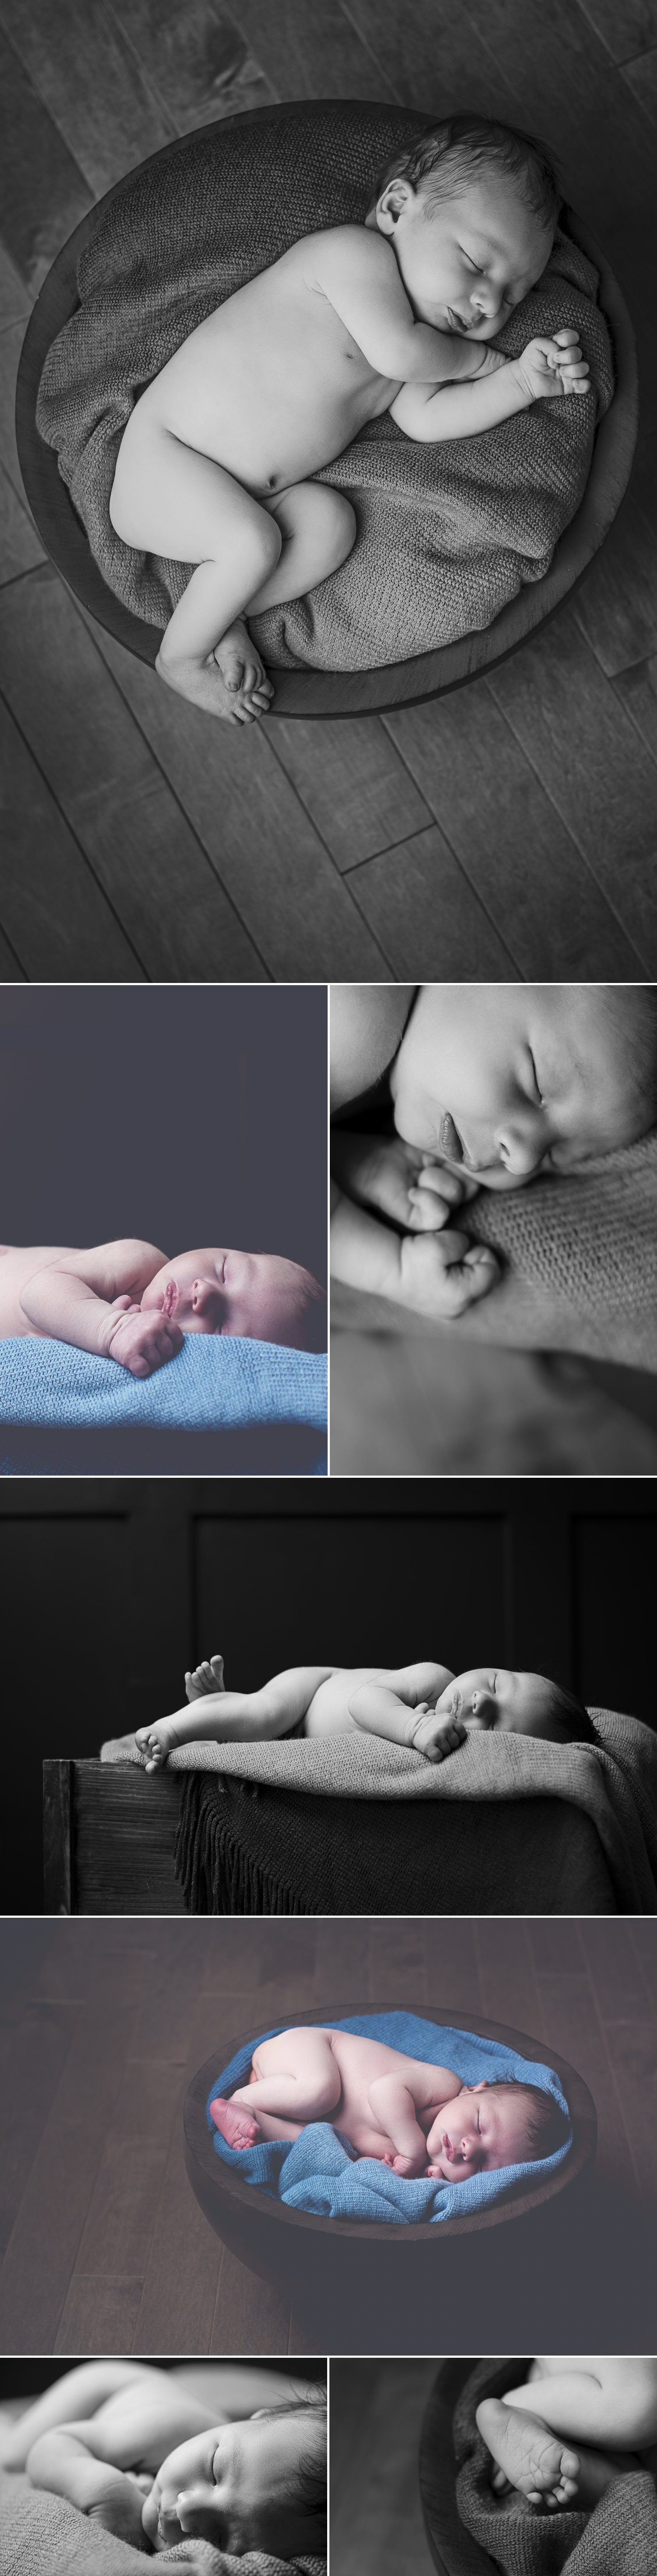 Newborn in studio Lifestyle Photography by Friday Design + Photography from Edmonton, Alberta, Canada.